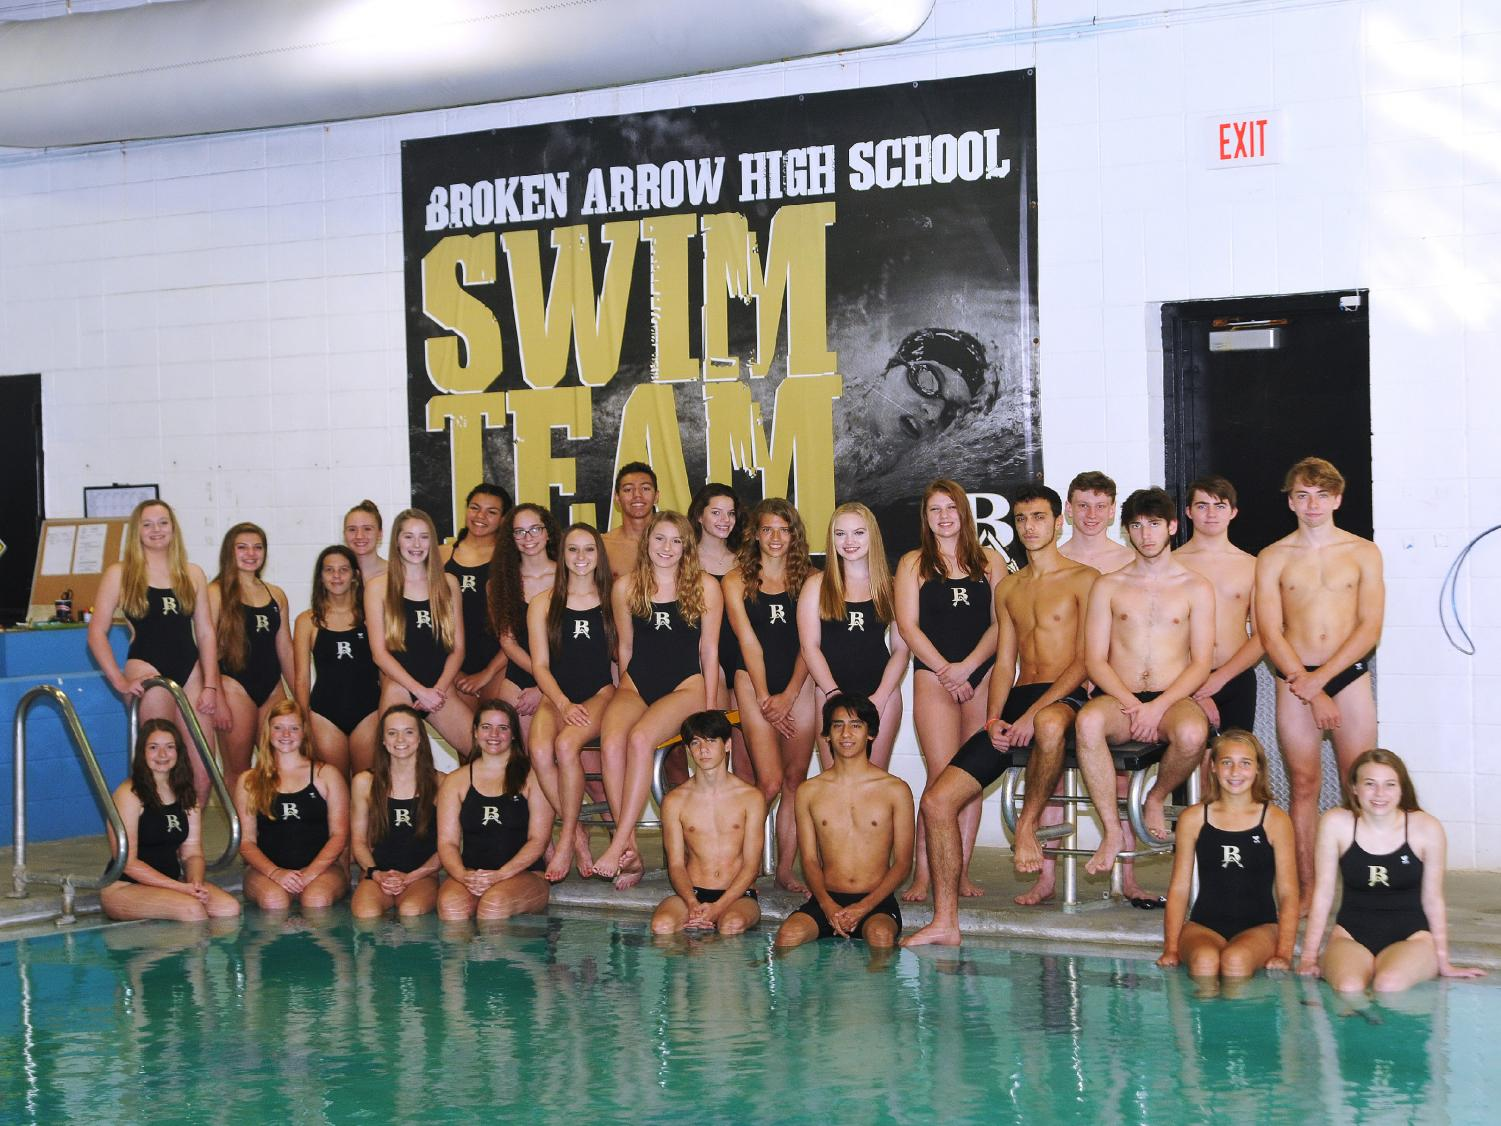 The 17-18 swim team poses for a team photo.